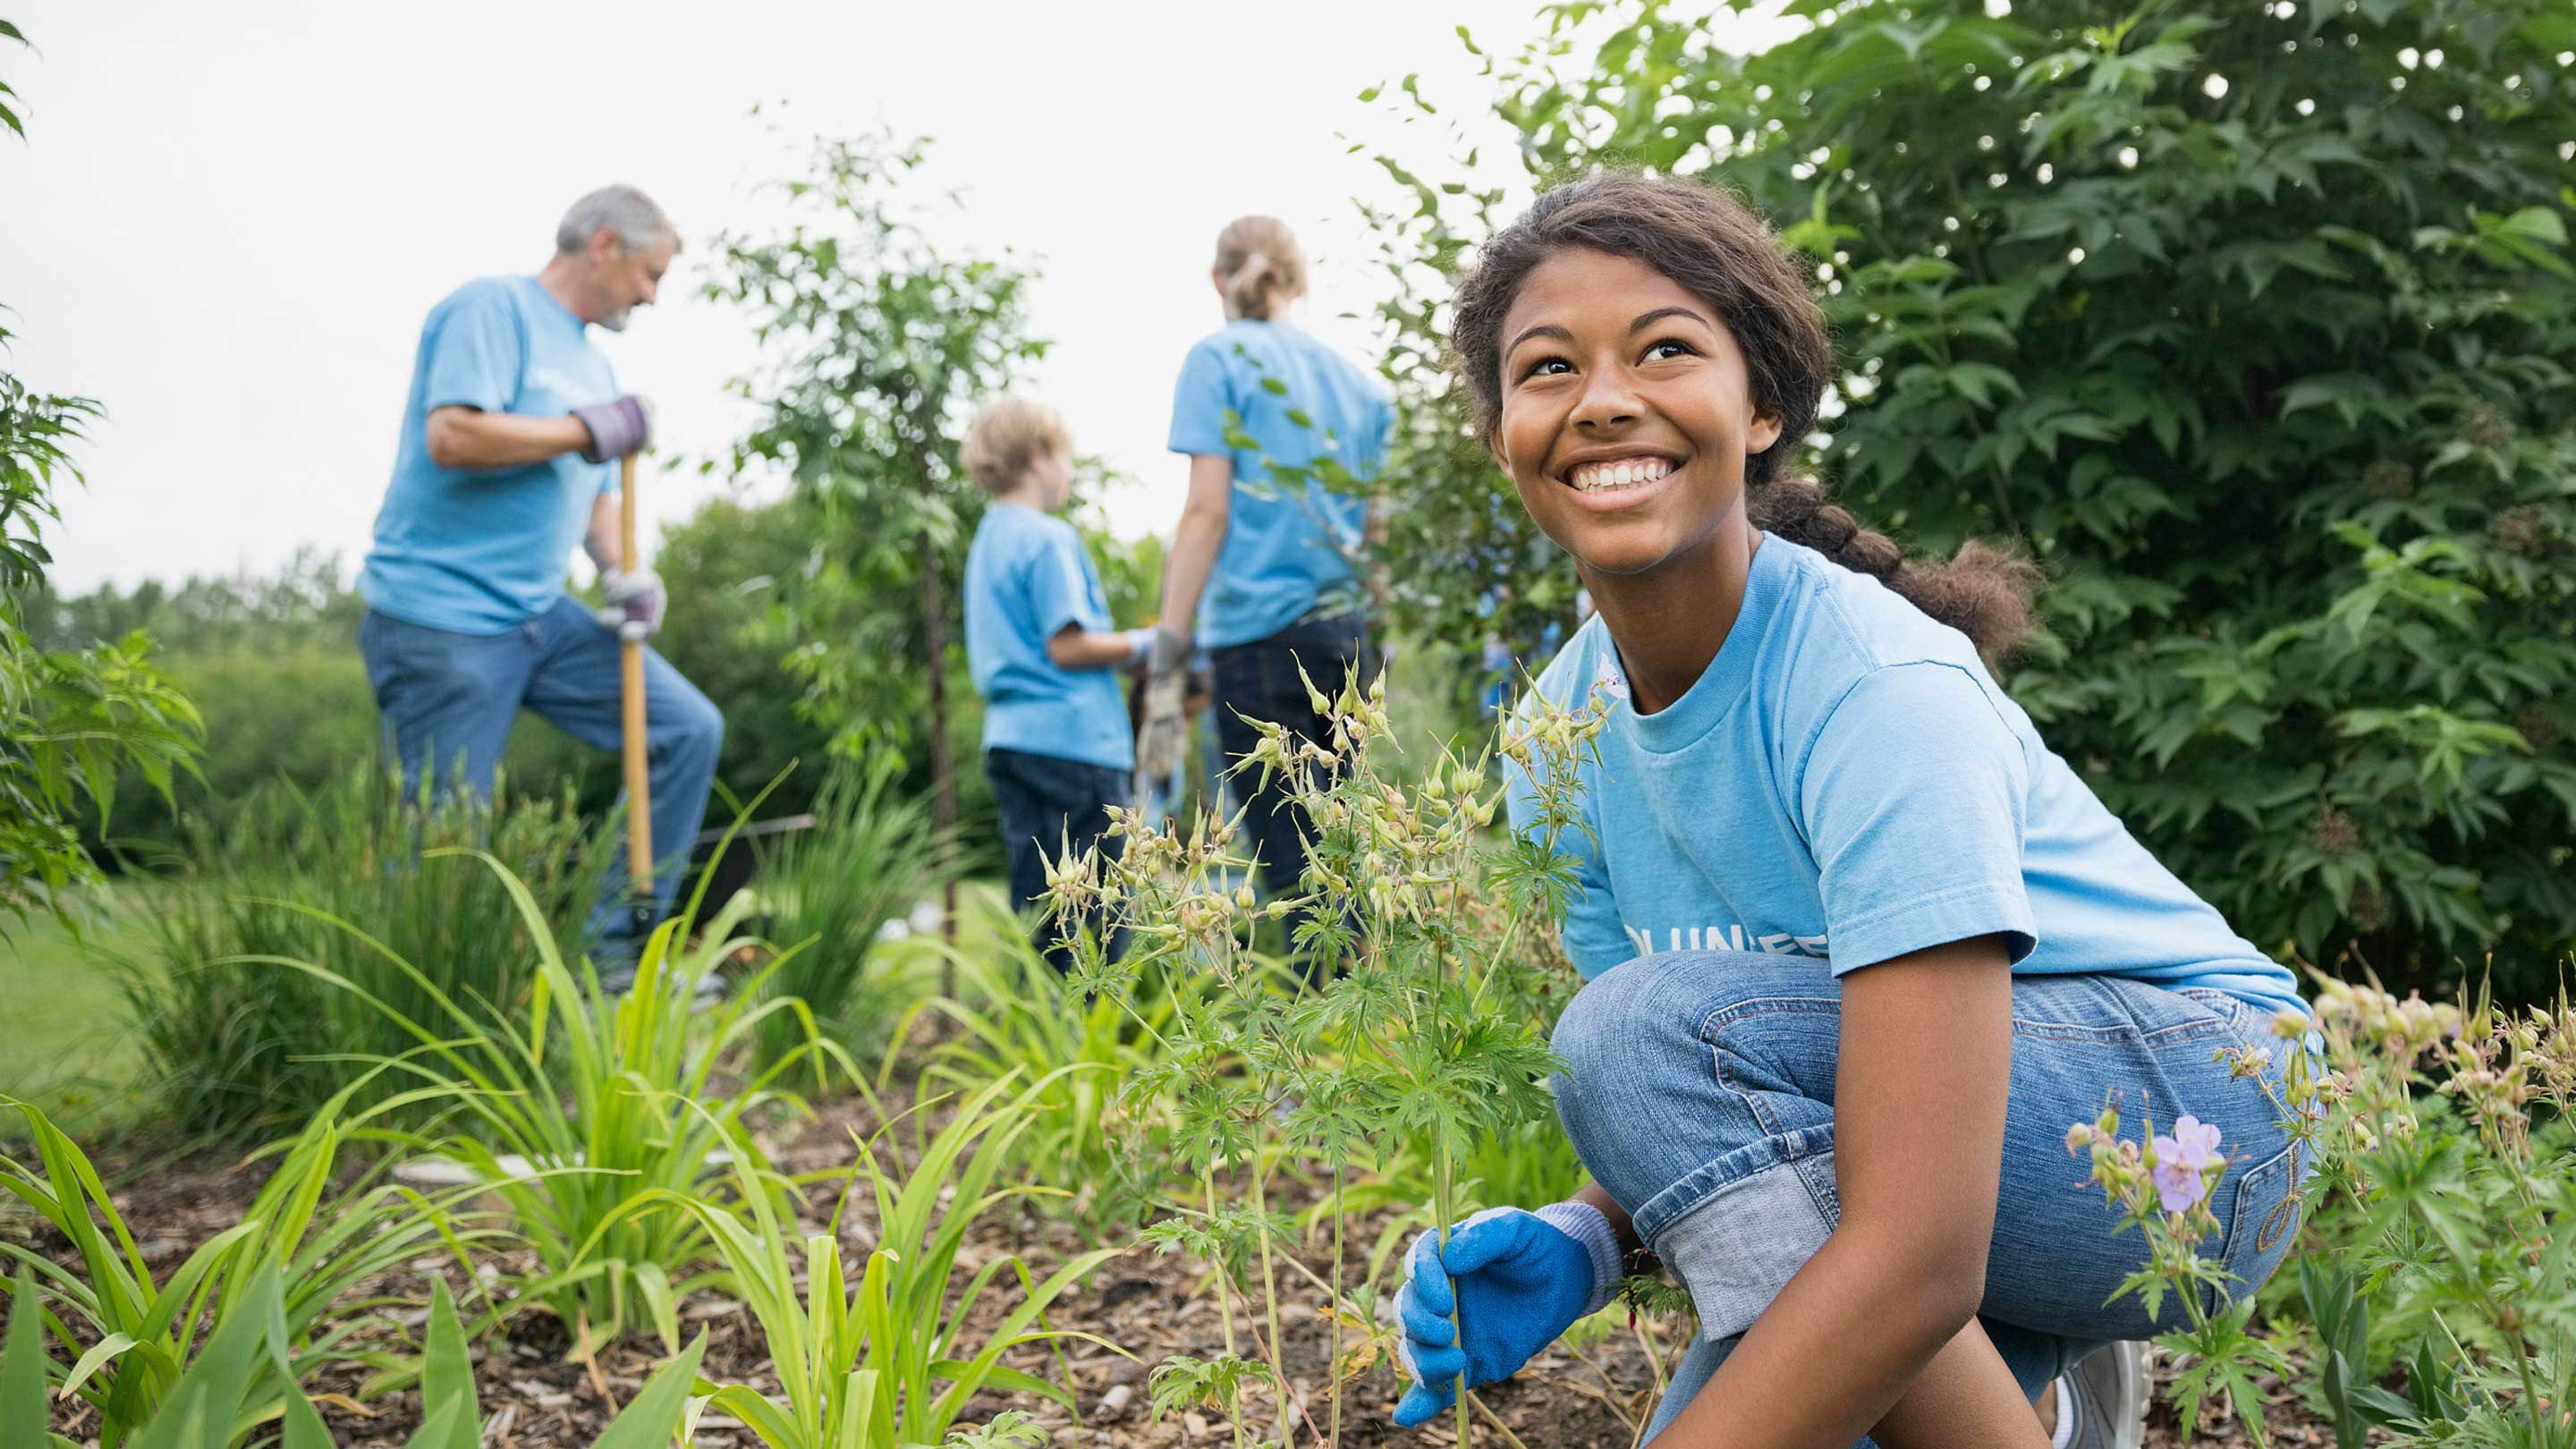 A girl in a blue shirt works in the garden